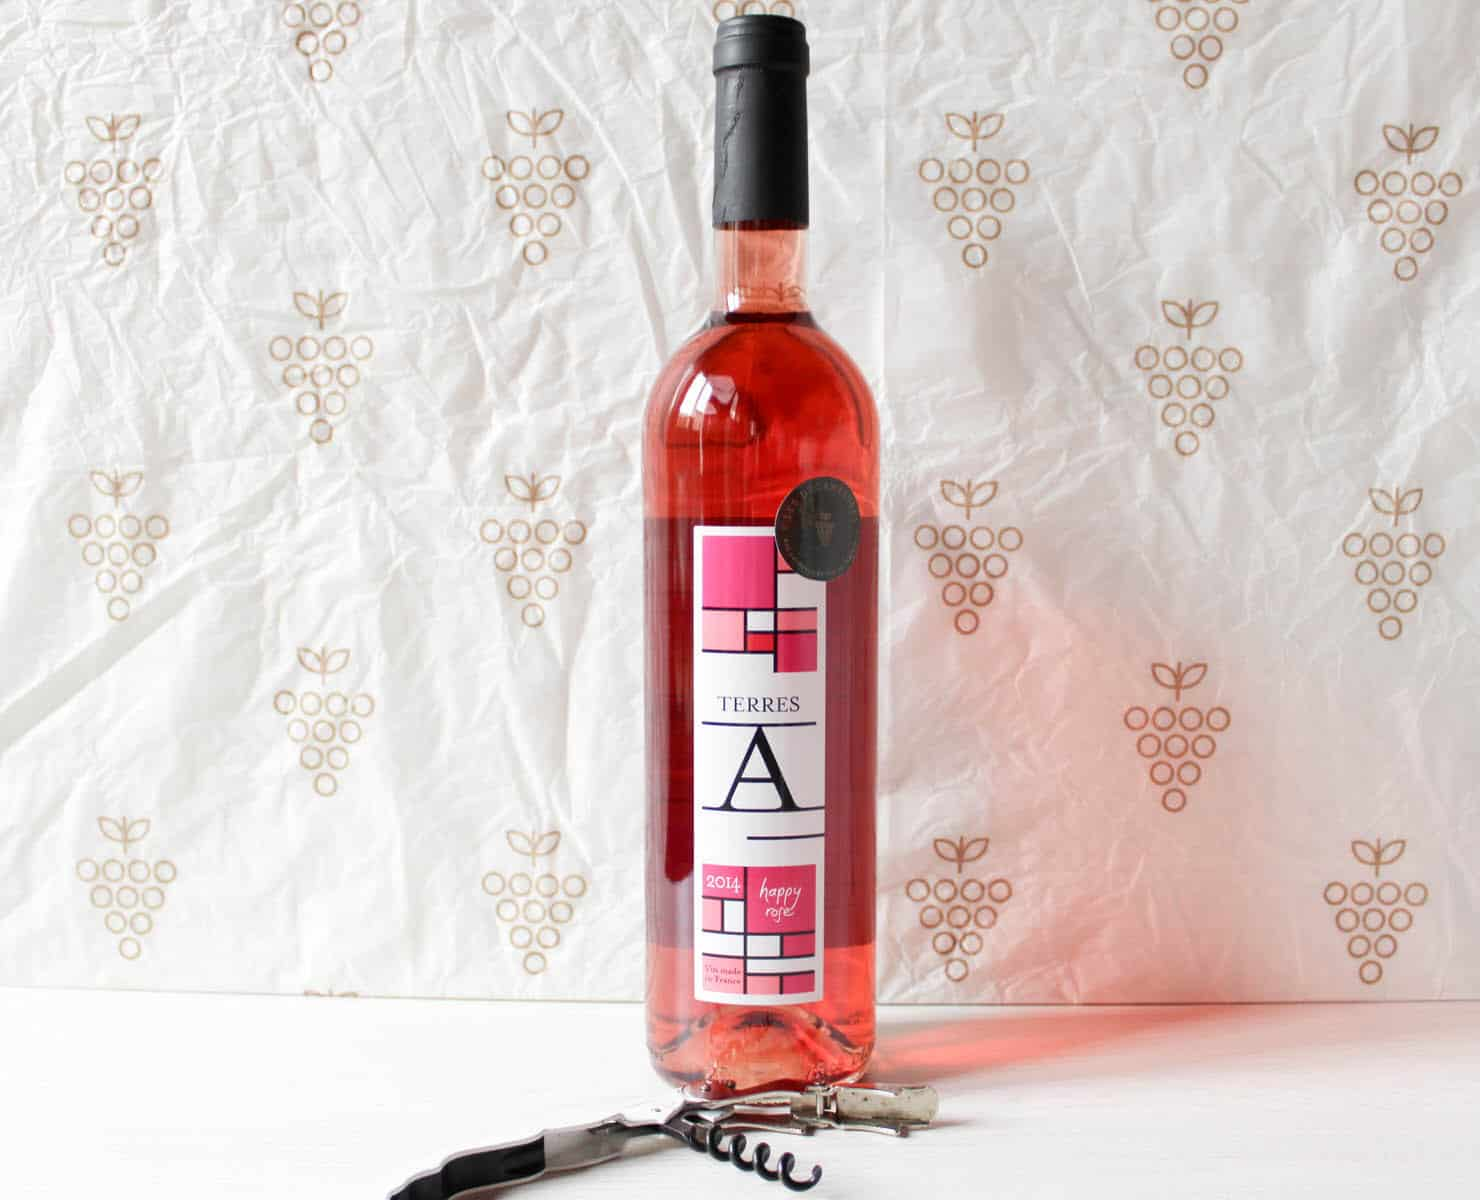 decanteuses-janiver2016